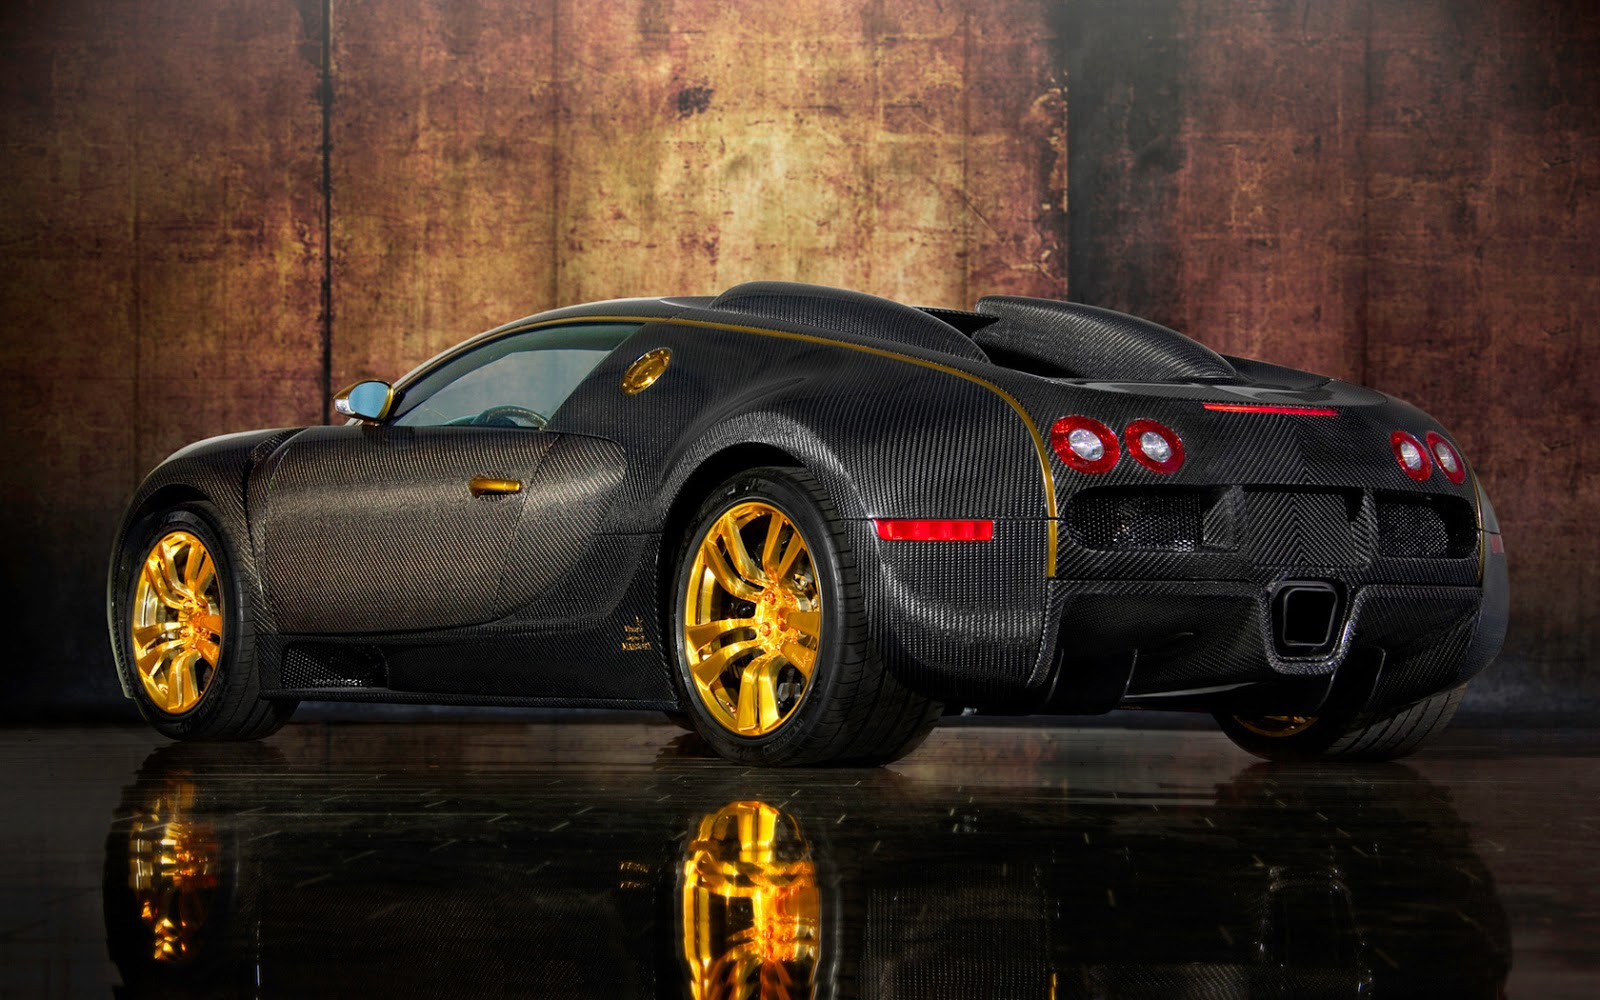 Bugatti Veyron Gold Edition Wallpapers Cars Wallpapers HD 1600x1000